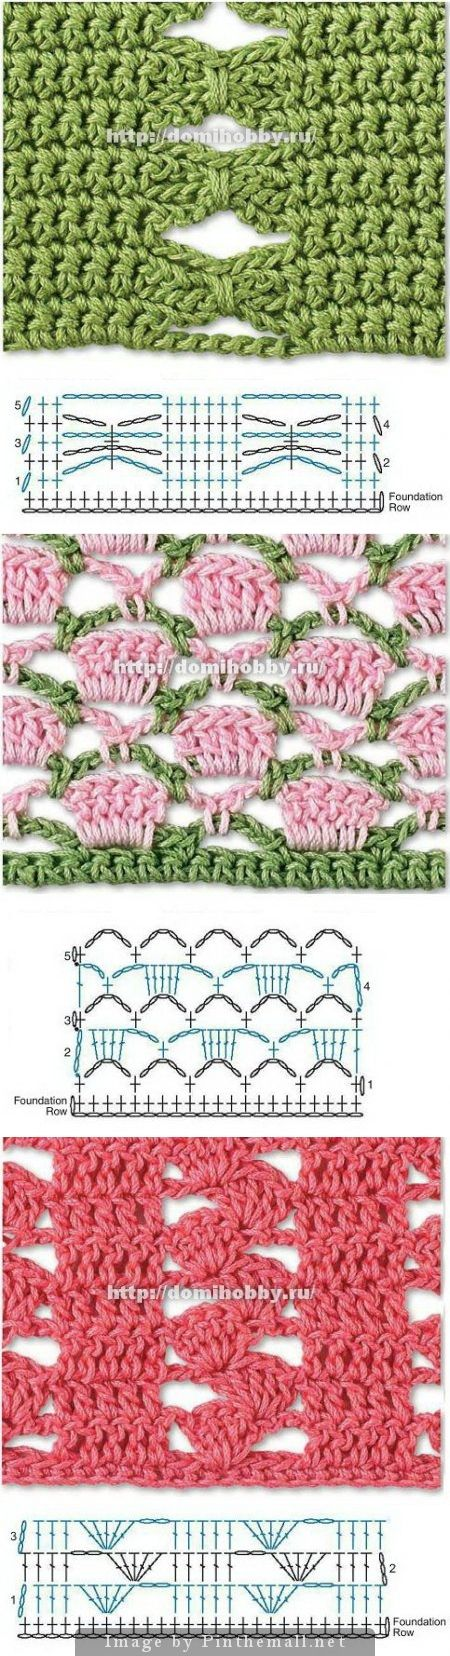 Beautiful Crochet Stitches - many more on this site - all with charts. Click on picture to check them out. #crochetstitch #crochet